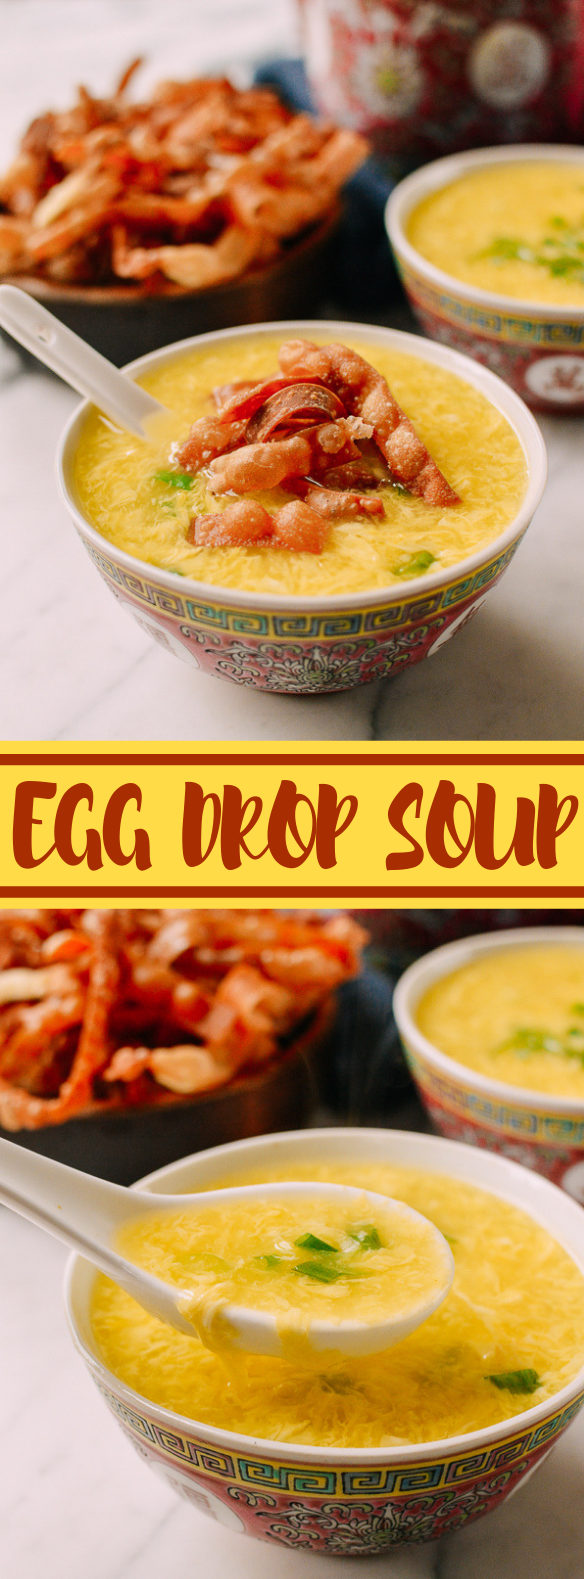 EGG DROP SOUP #chinesefood #soups